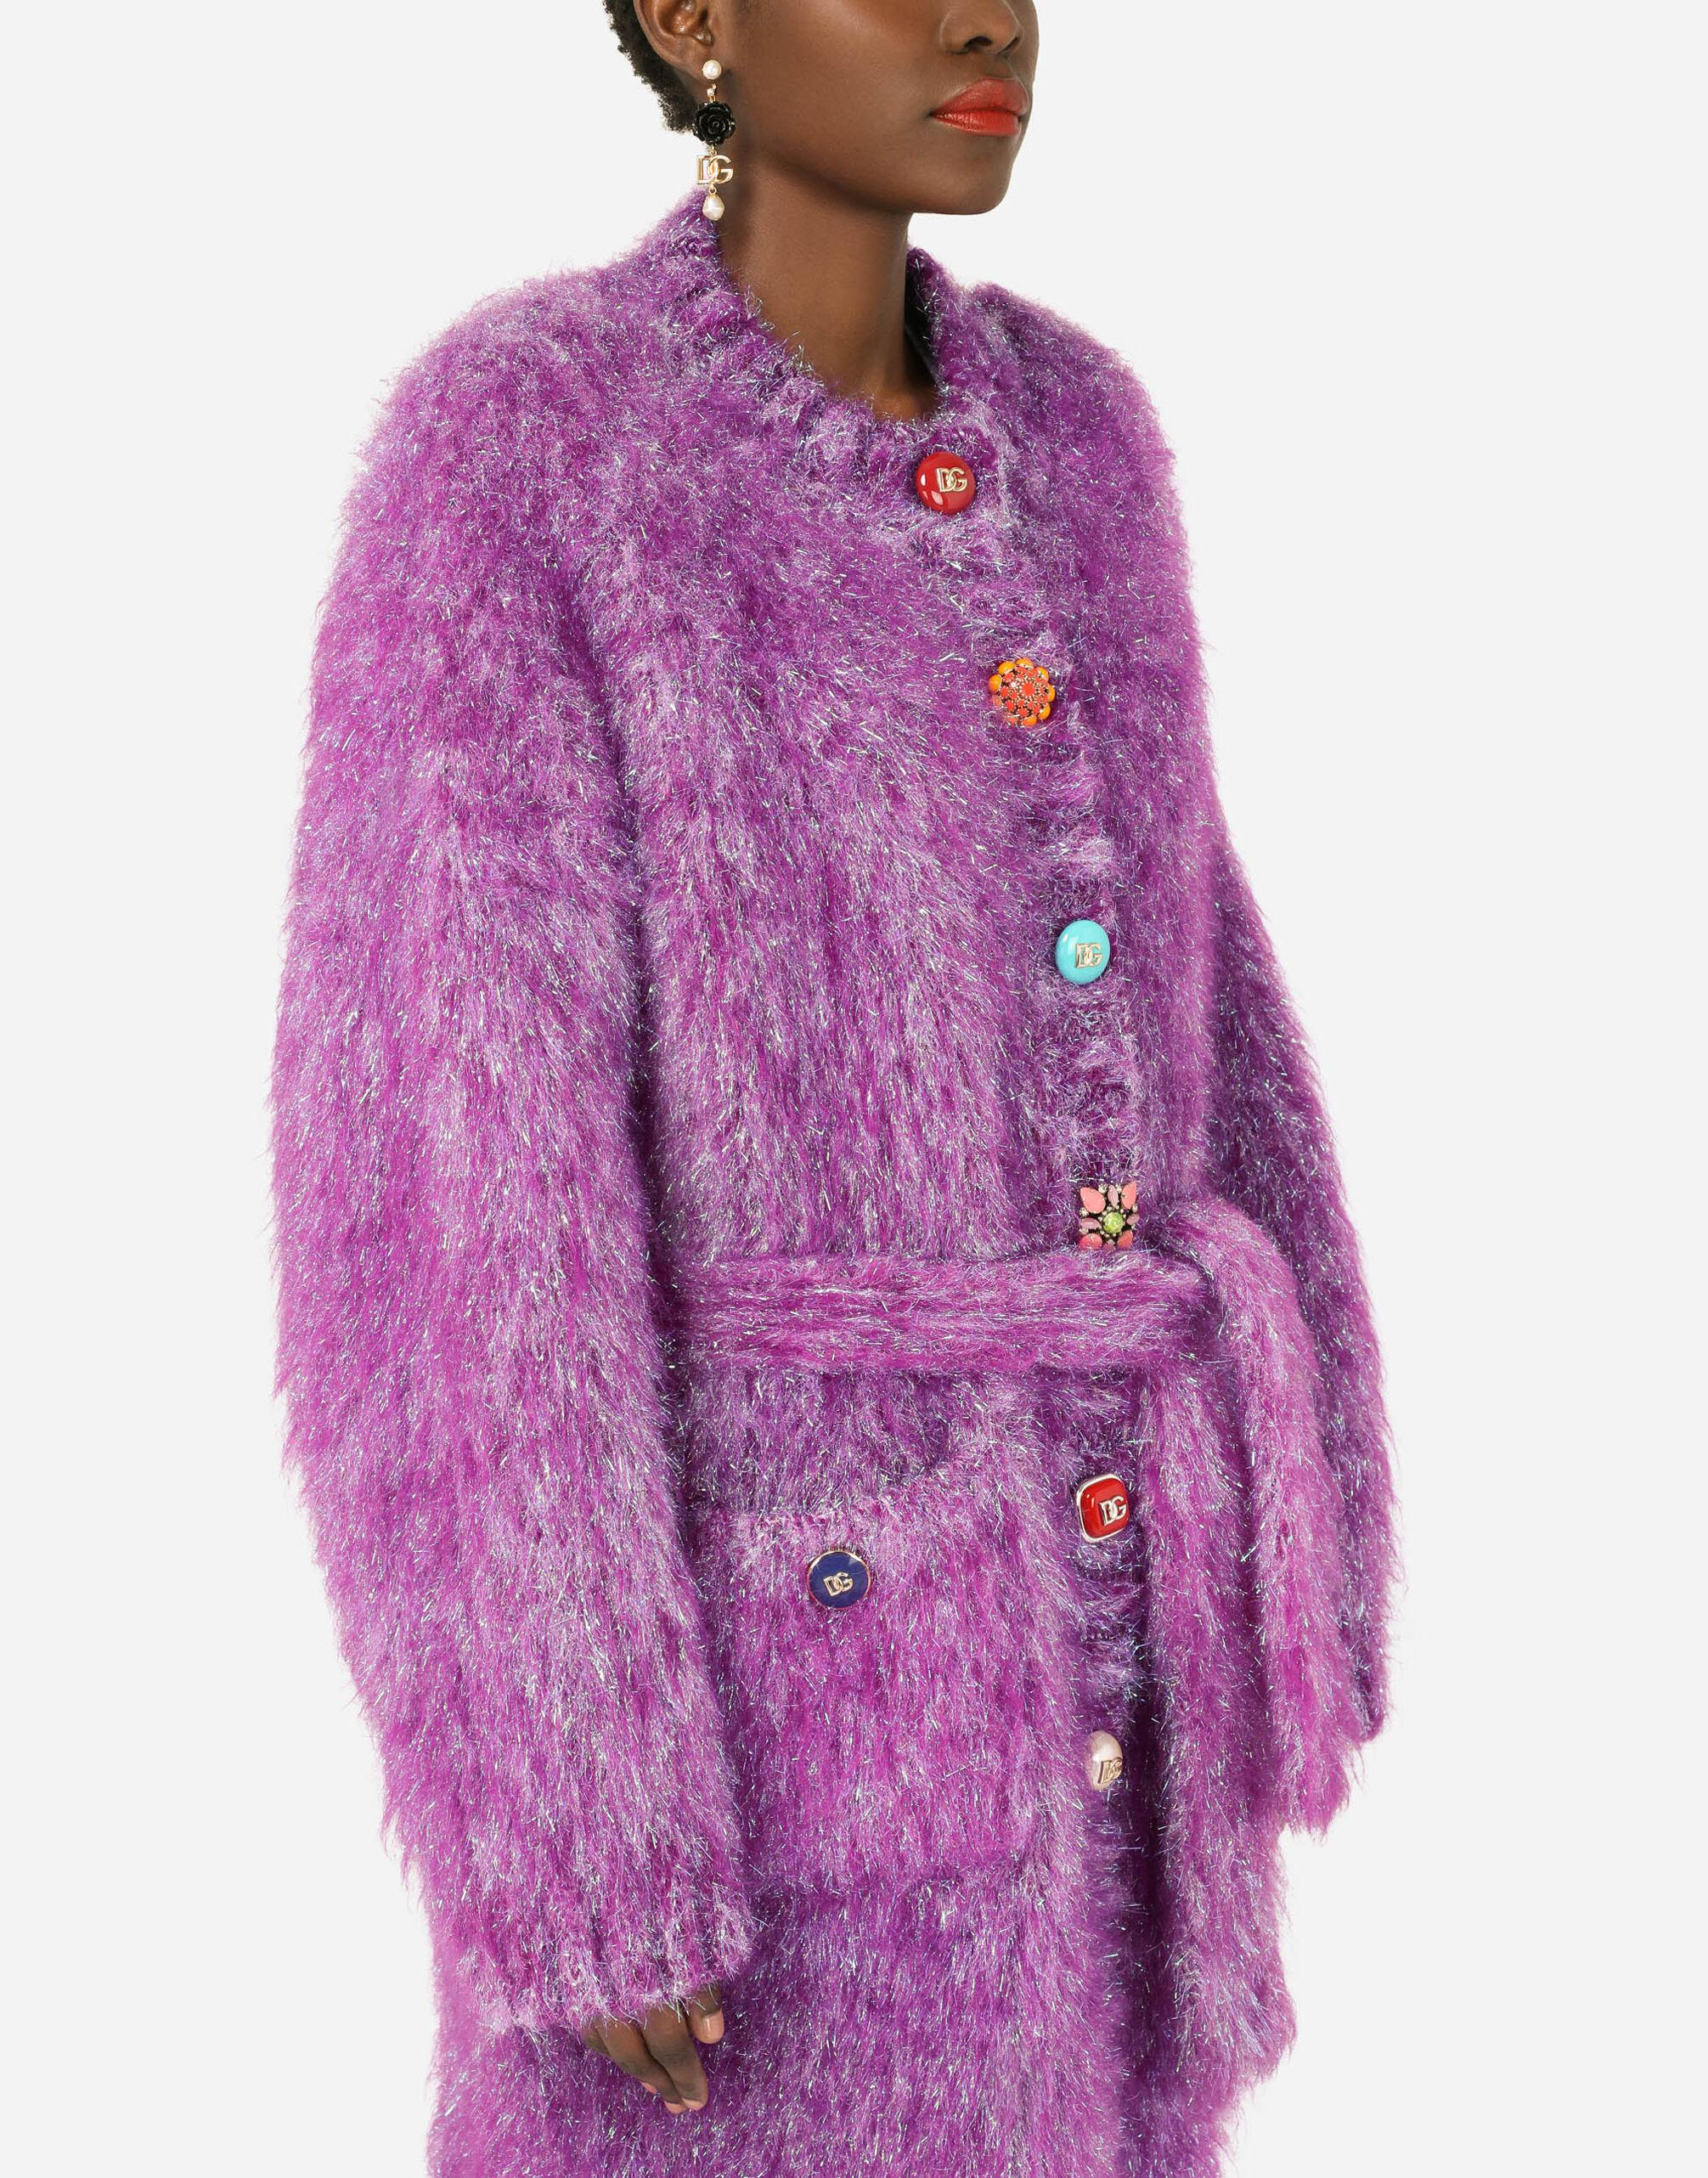 Knit coat with bejeweled buttons 2